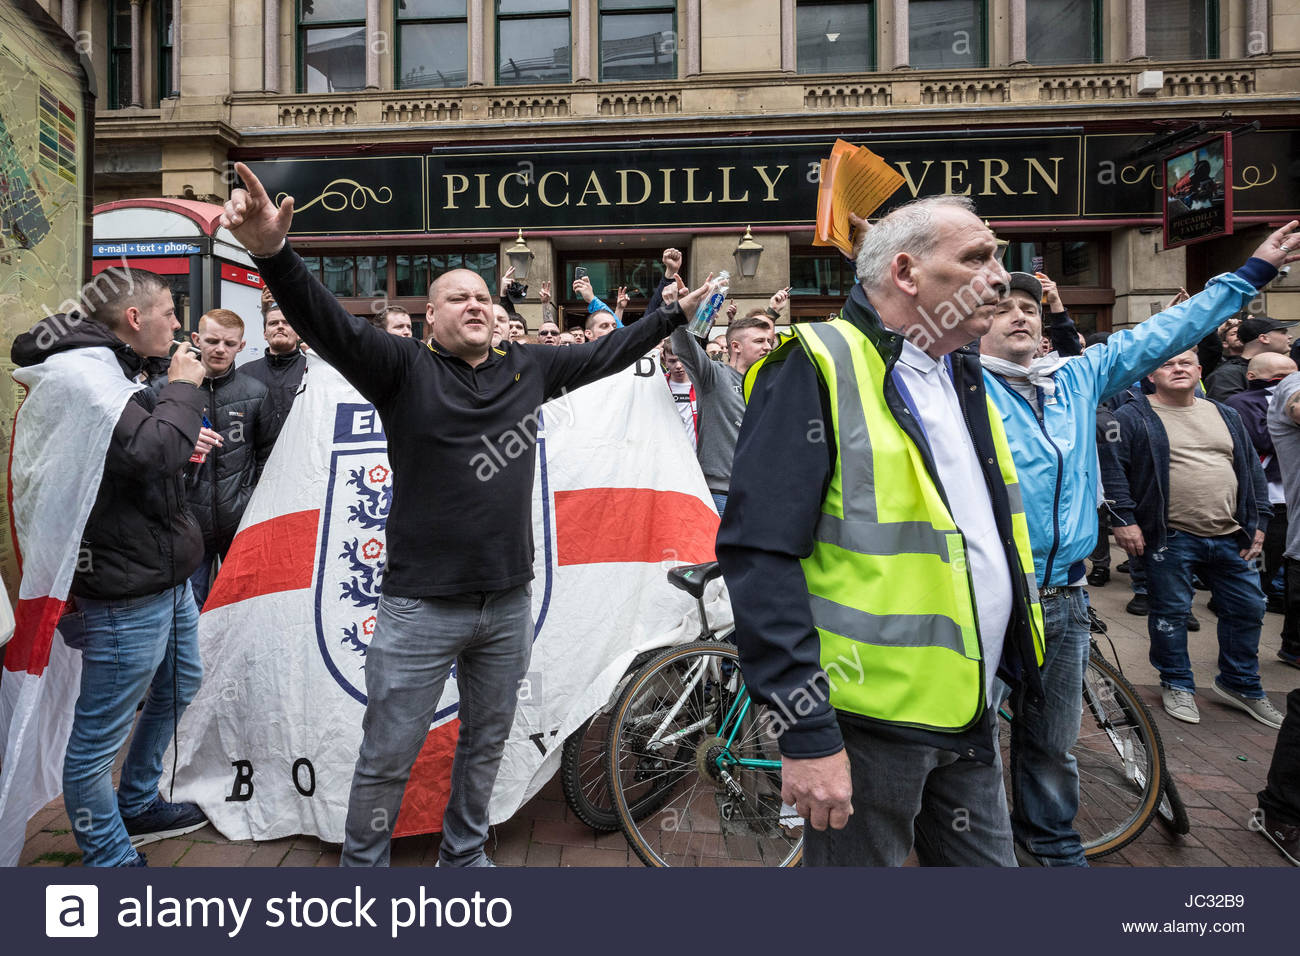 About 1,000 attend right-wing 'Unite Against Hate' anti-Islamic march and rally lead by Tommy Robinson in Manchester - Stock Image